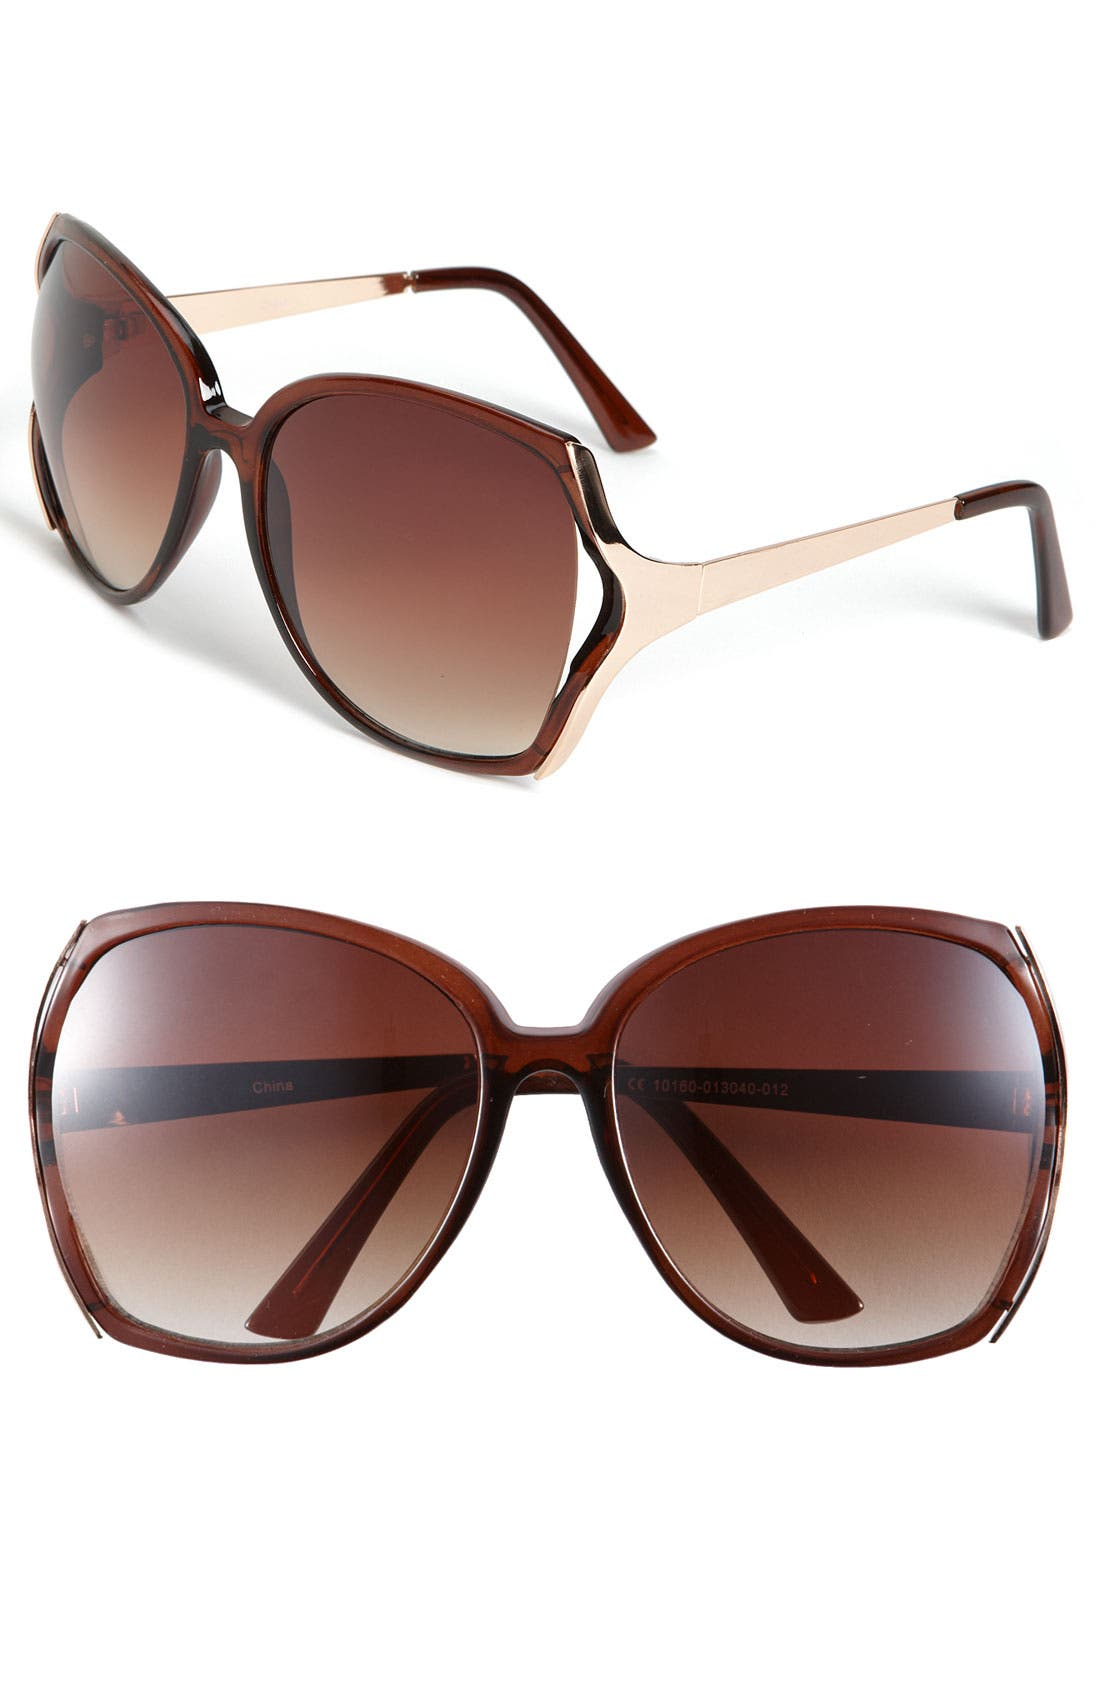 Main Image - Icon Eyewear 'Paris' Sunglasses (2 for $20)